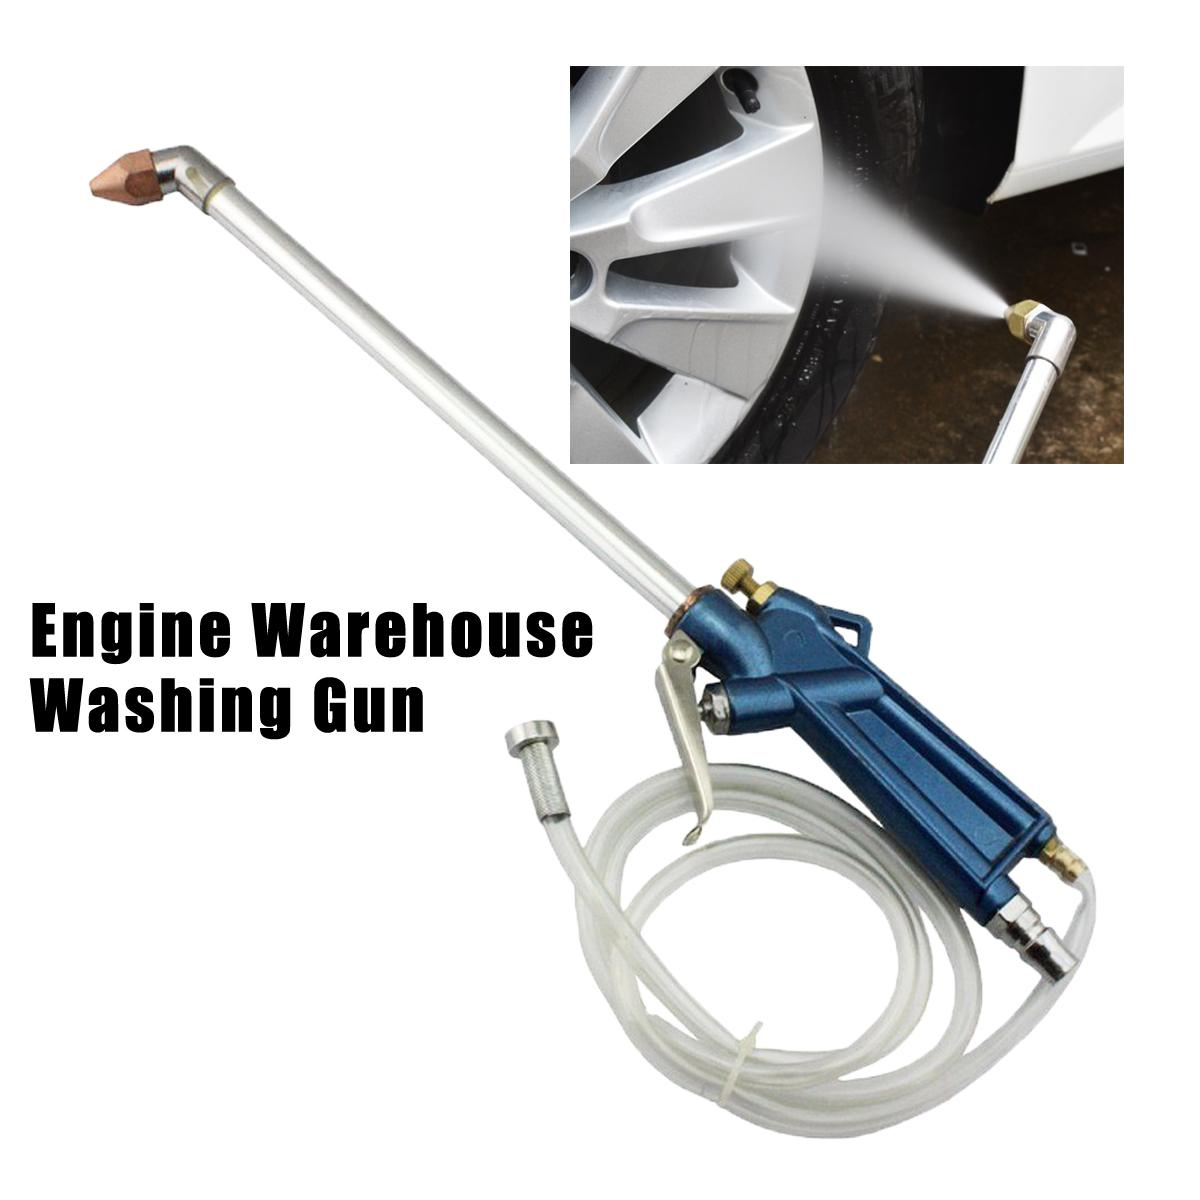 Car Engine Warehouse Air Pressure Cleaner Washing Guns Sprayer Dust Oil Clean Tool Washer Sprayer Dust Tool For Car Washer